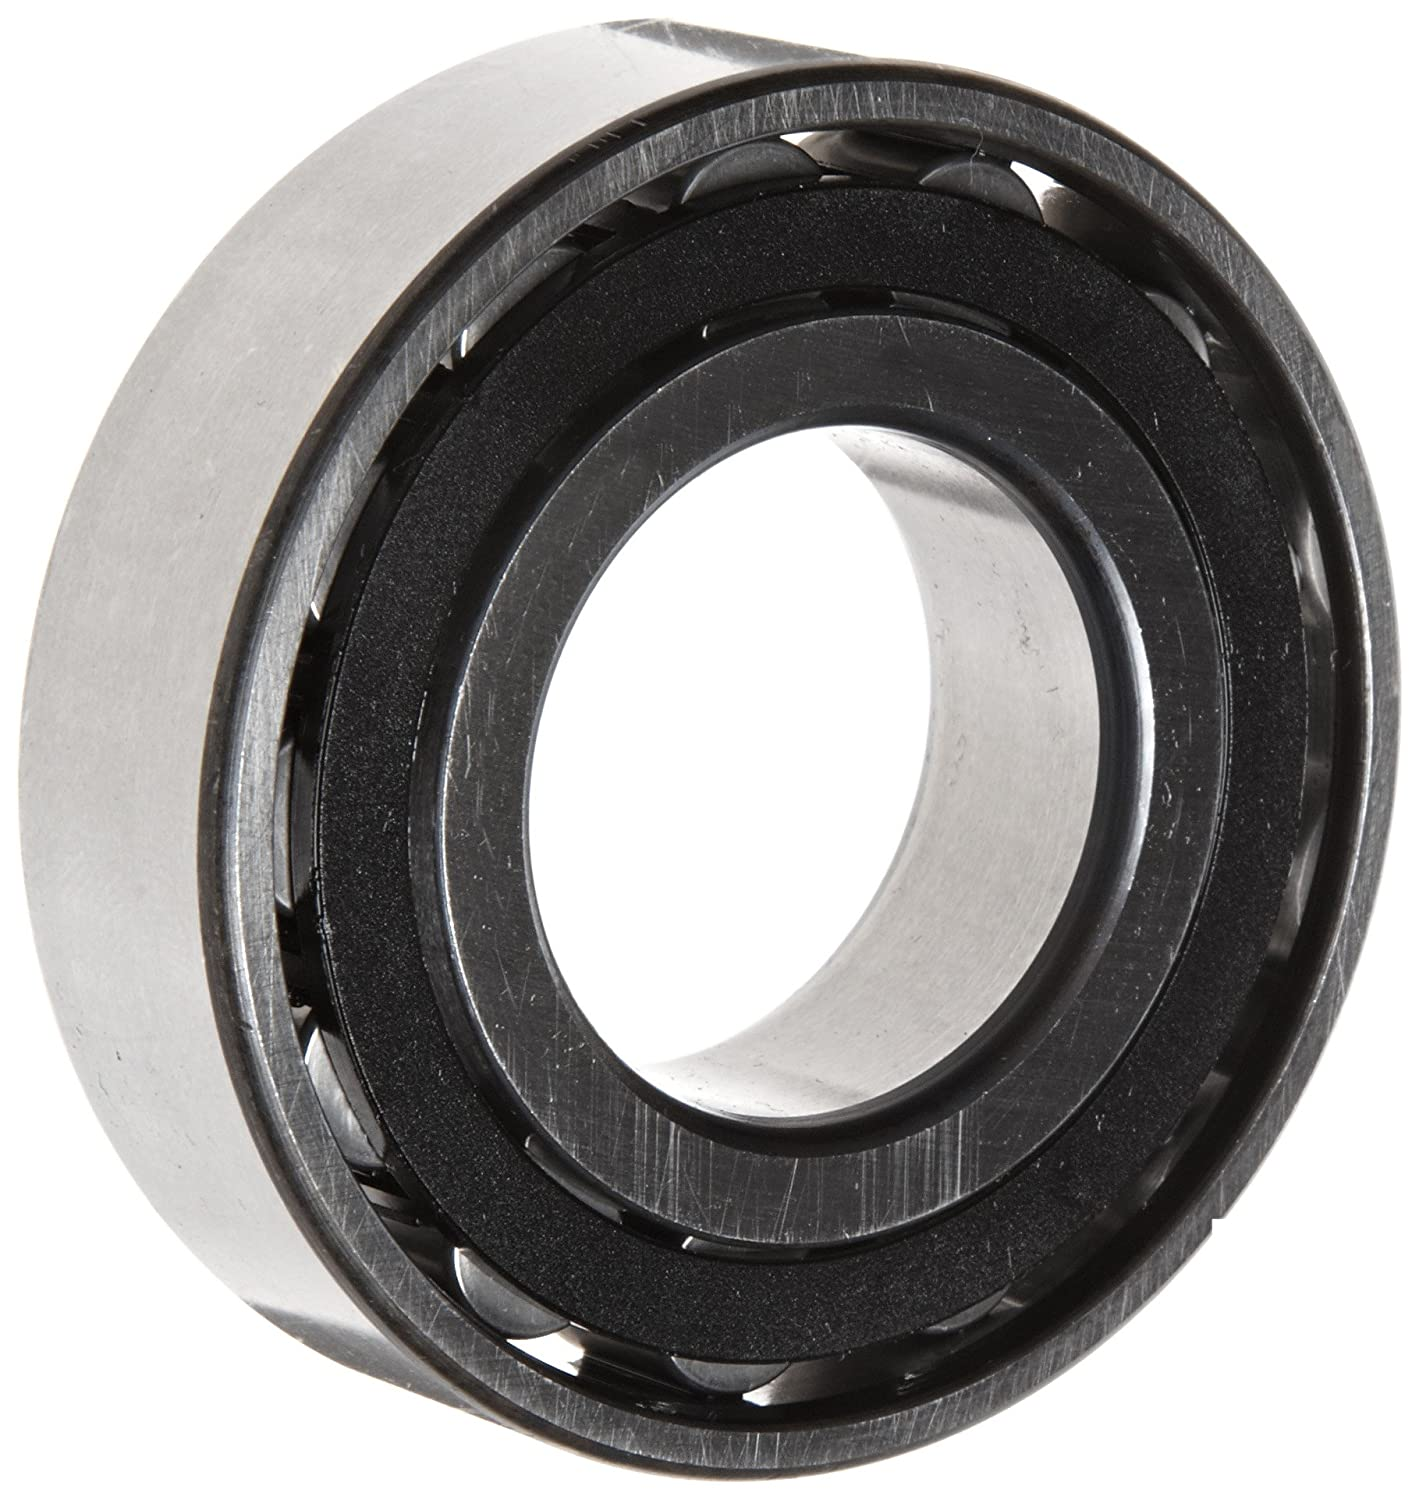 Mail order FAG Max 80% OFF N211E-TVP2 Cylindrical Roller Row Straight Single Bearing